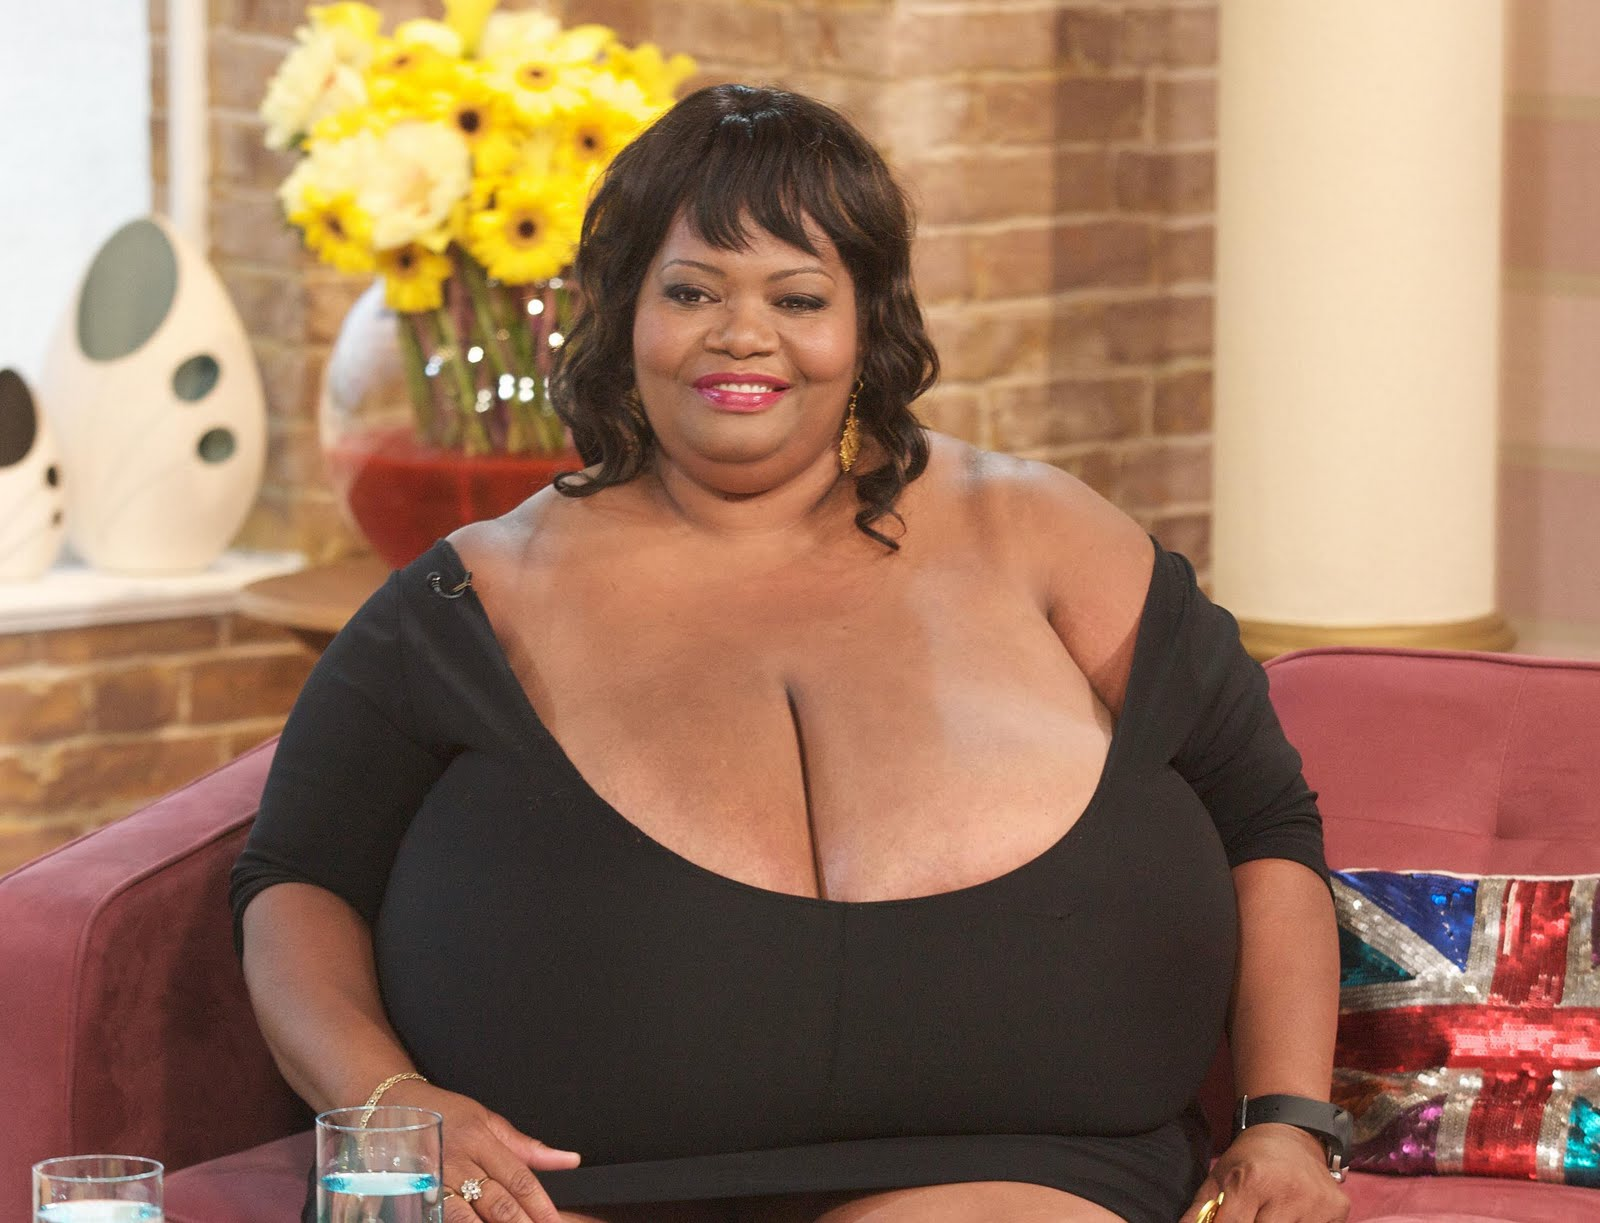 World'S Largest Natural Breasts 103